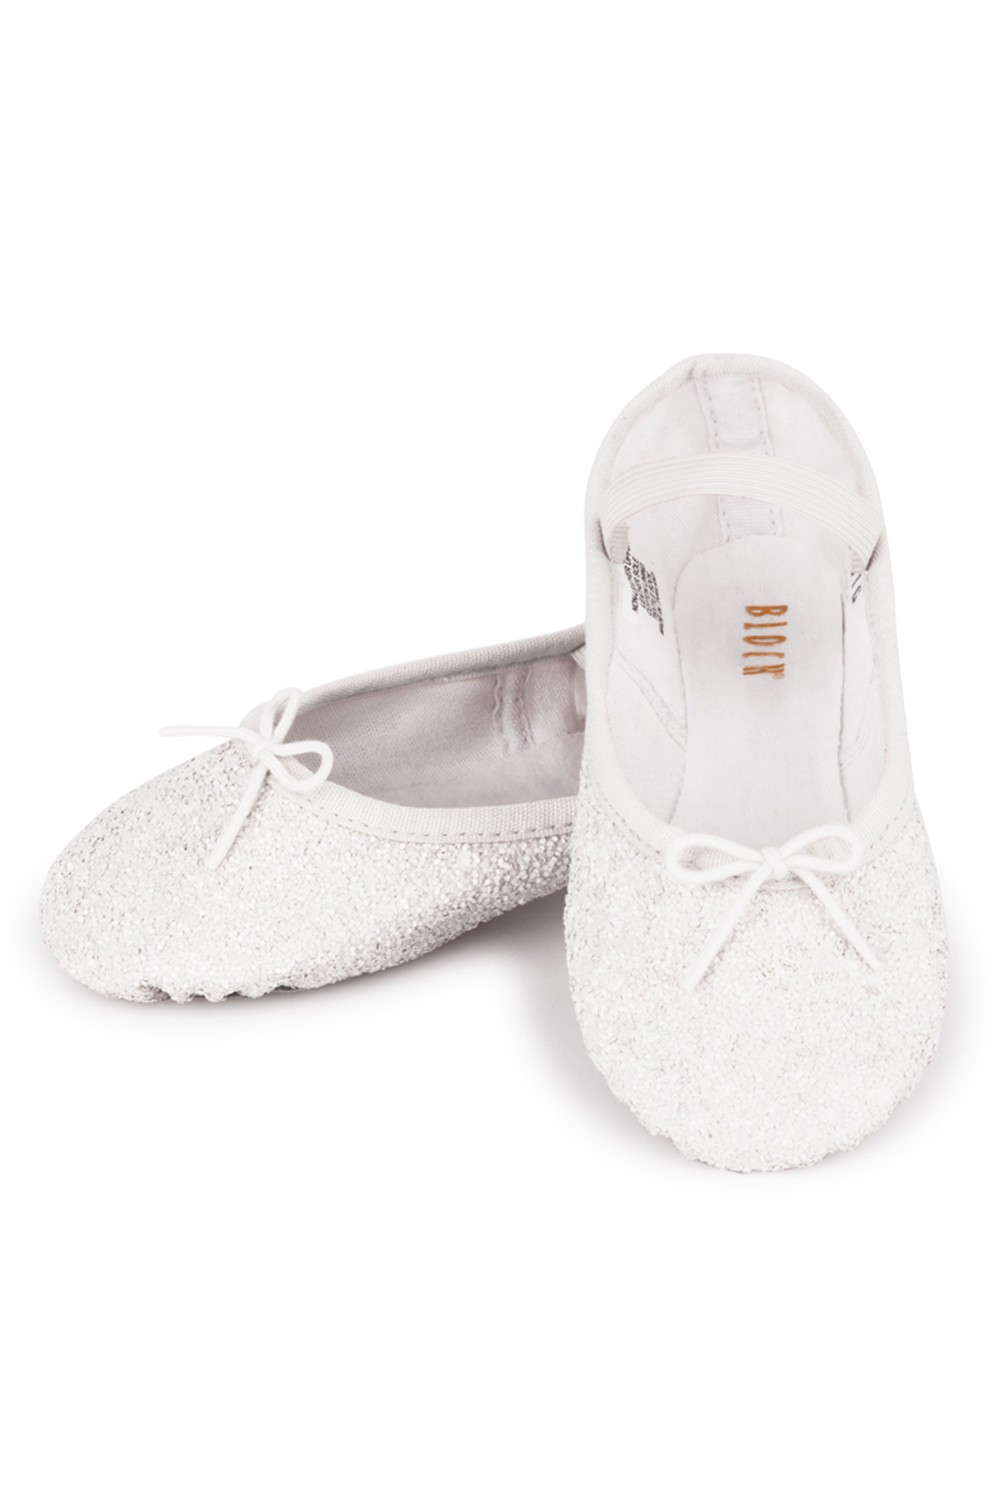 Sparkle - Toddler Girl's Ballet Shoes